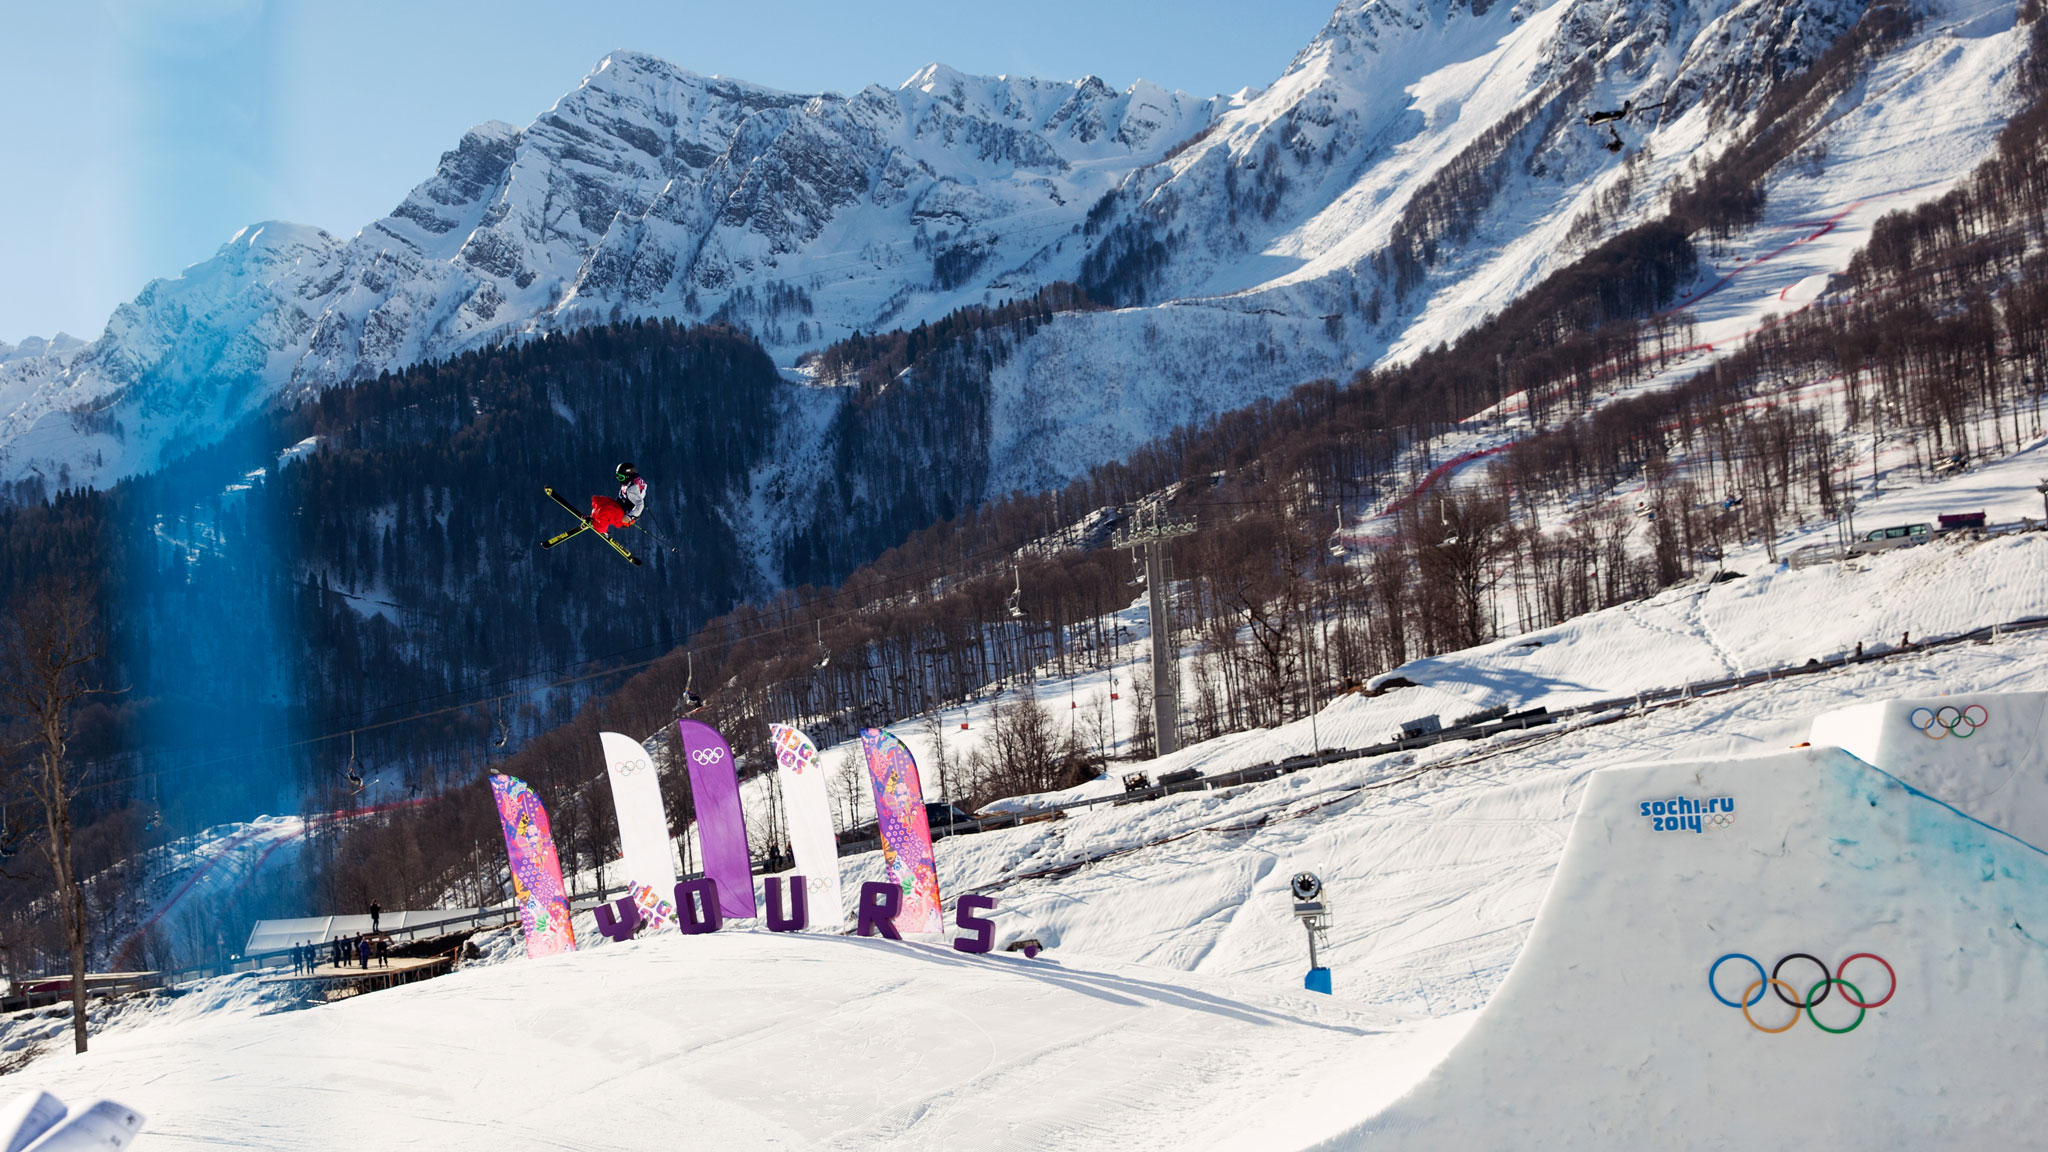 Joss Christensen skiing to victory in the inaugural slopestyle contest at the Olympic Games.